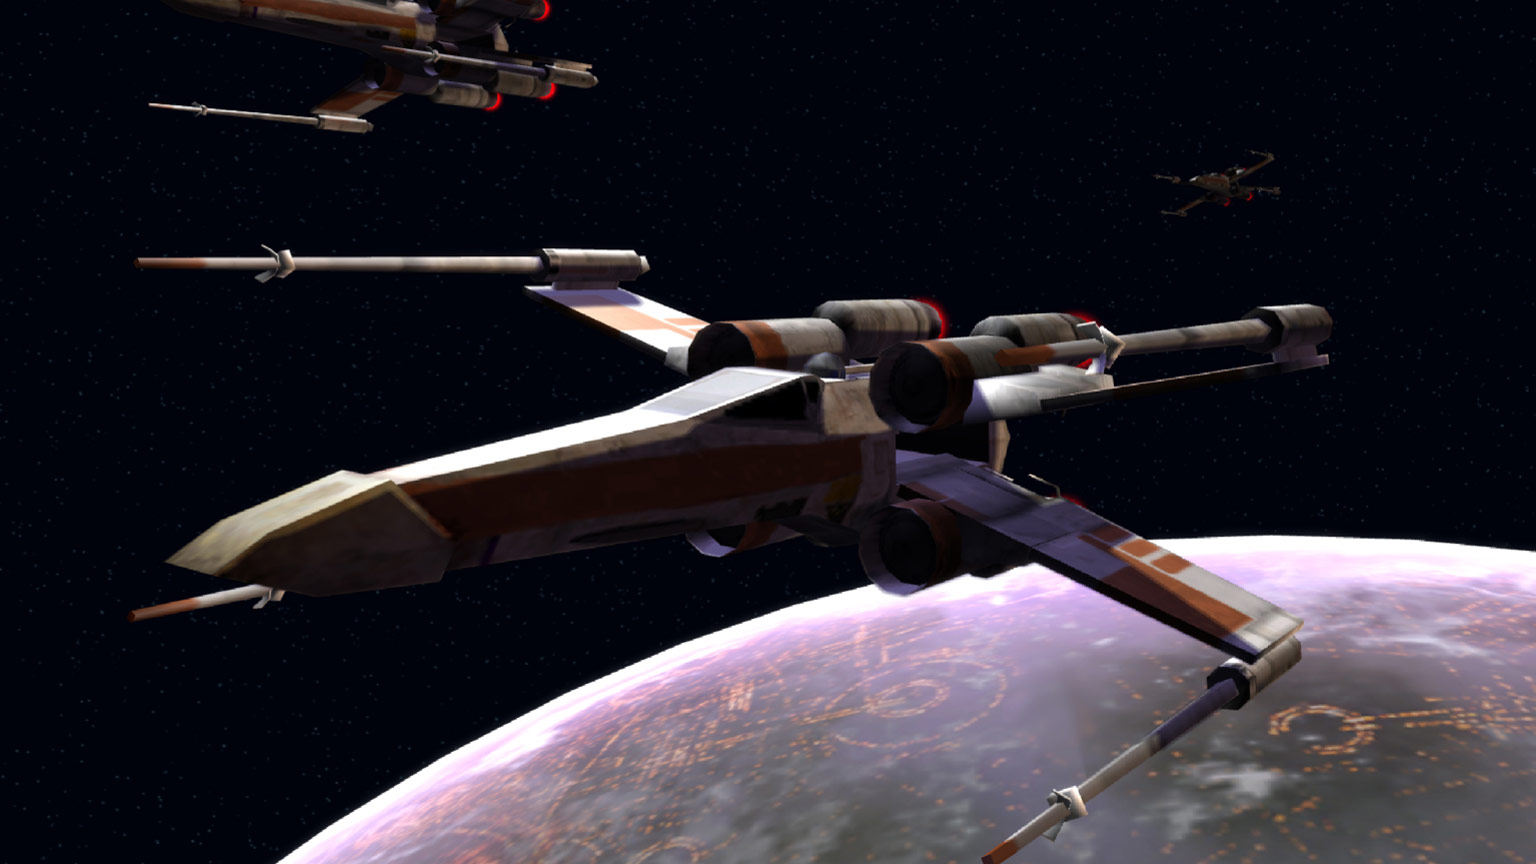 X-wings from Star Wars: Empire at War.